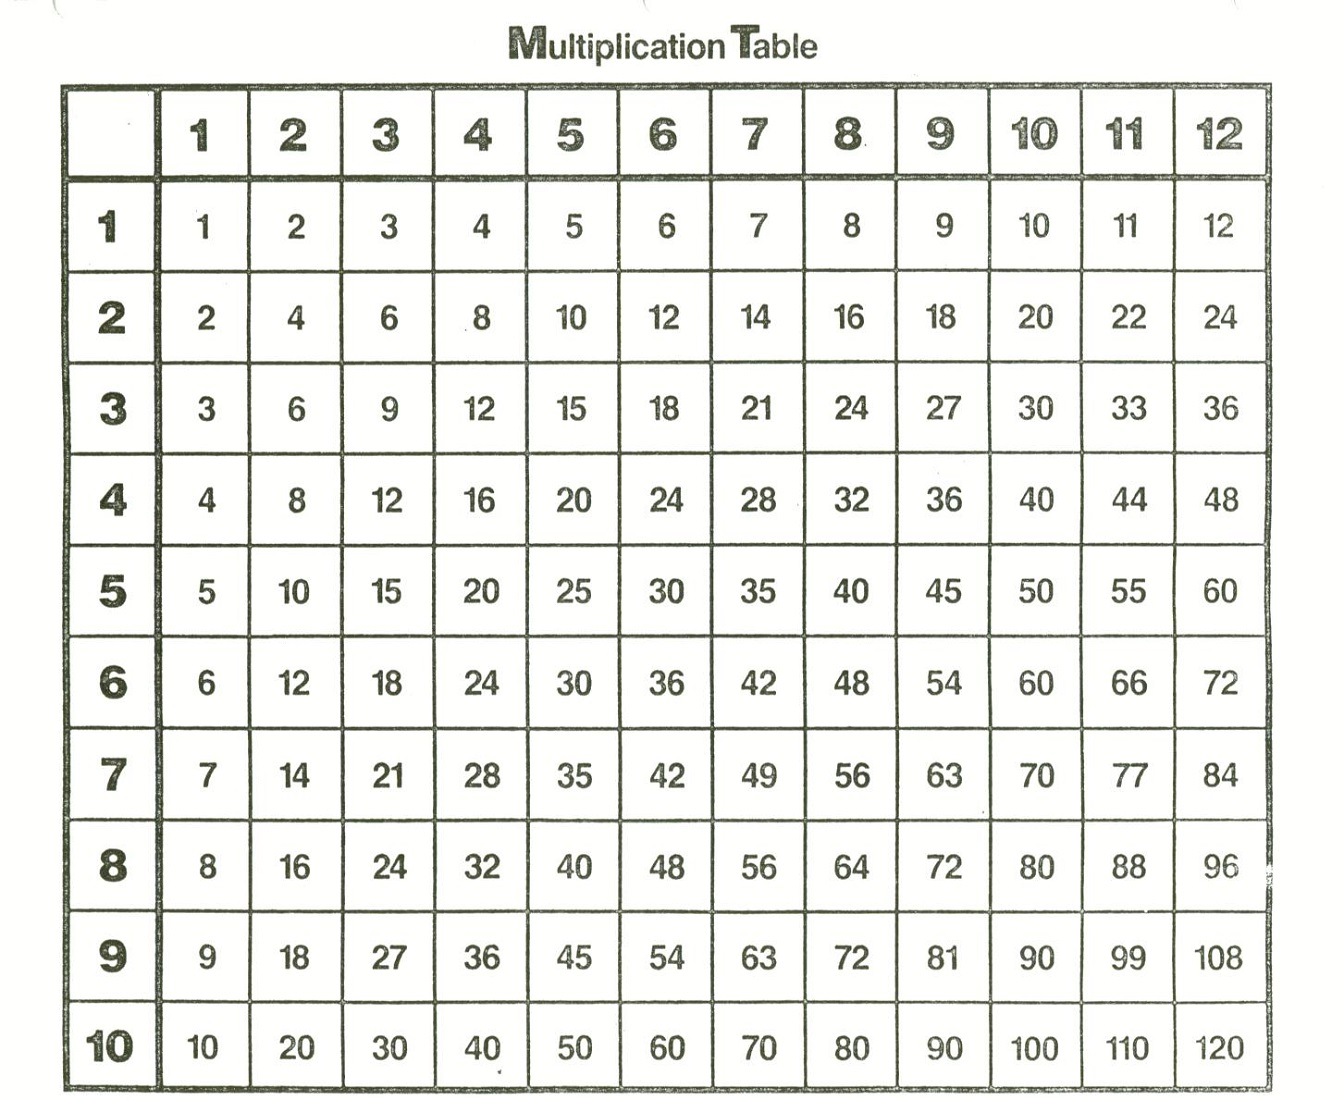 math worksheet : multiplication table 1 12 with answers  flash cards  : Super Teacher Worksheets Multiplication Table